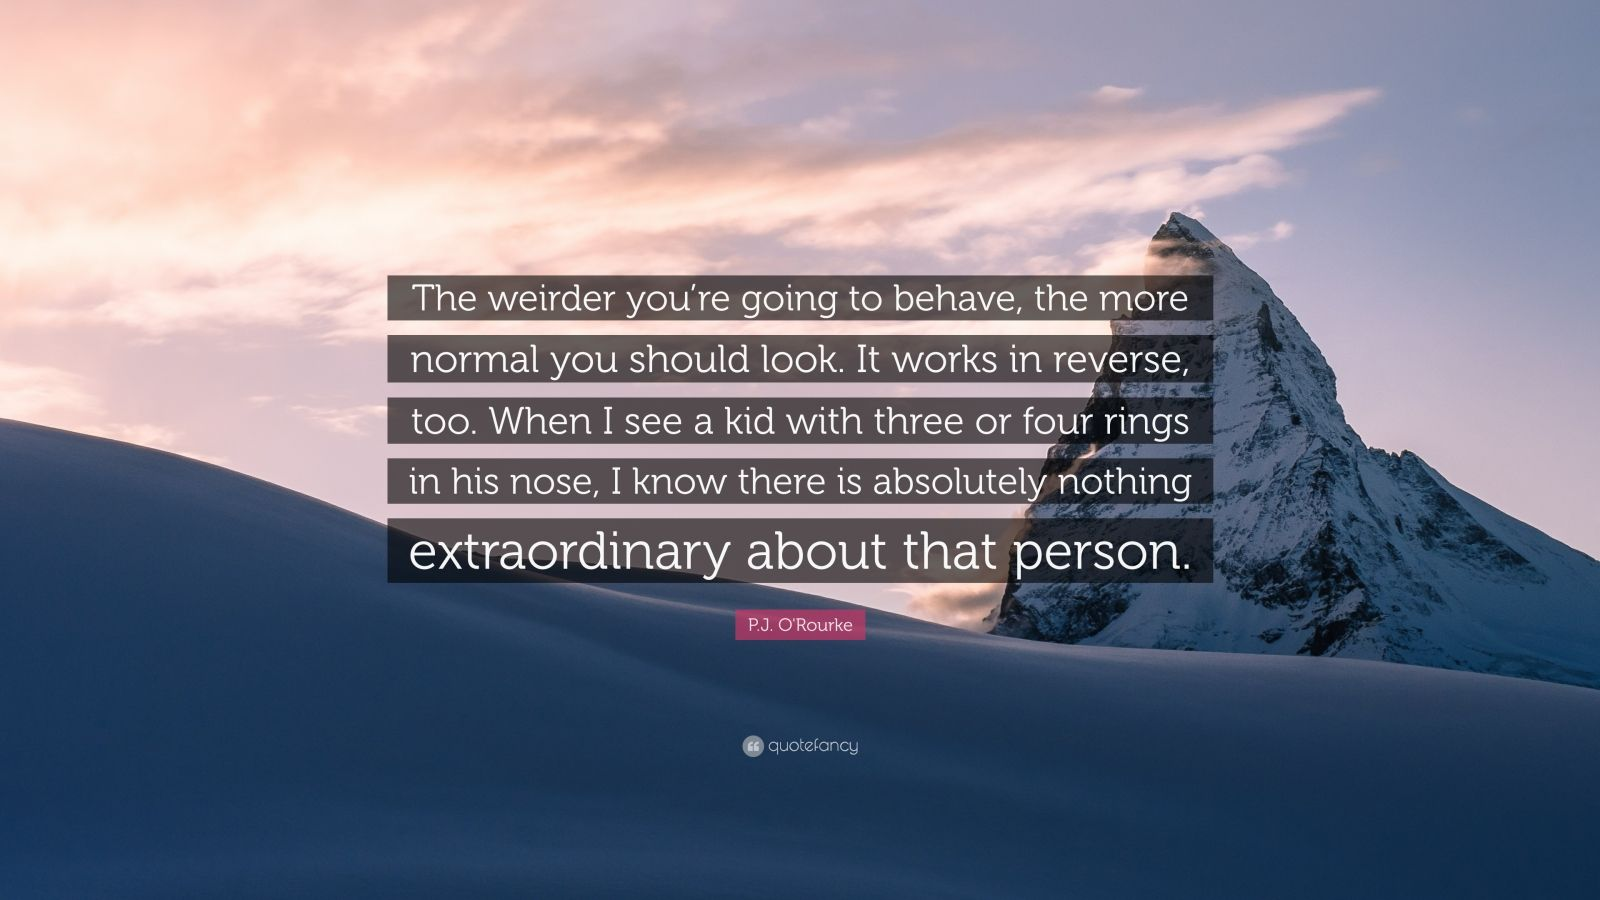 "P.J. O'Rourke Quote: ""The weirder you're going to behave, the more normal you should look. It works in reverse, too. When I see a kid with three or four rings in his nose, I know there is absolutely nothing extraordinary about that person."""